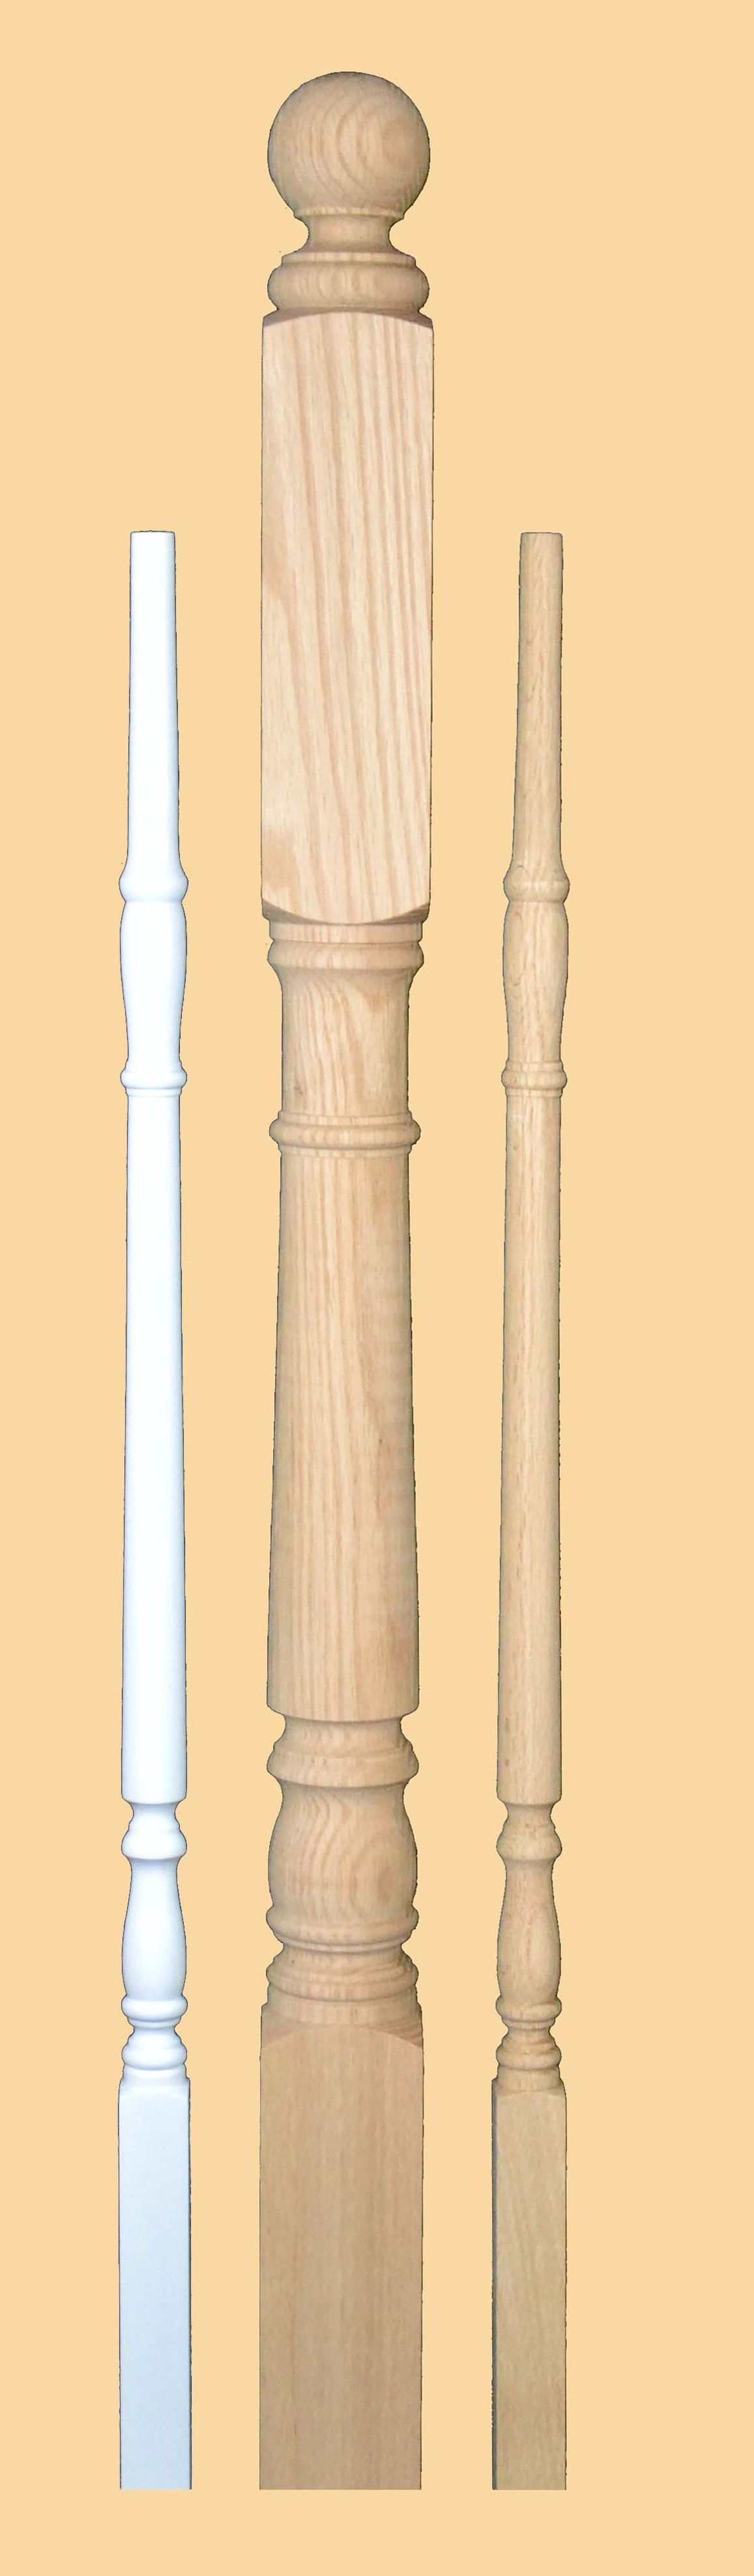 Elgin Pre-Primed White, Hardwood Newel & Baluster